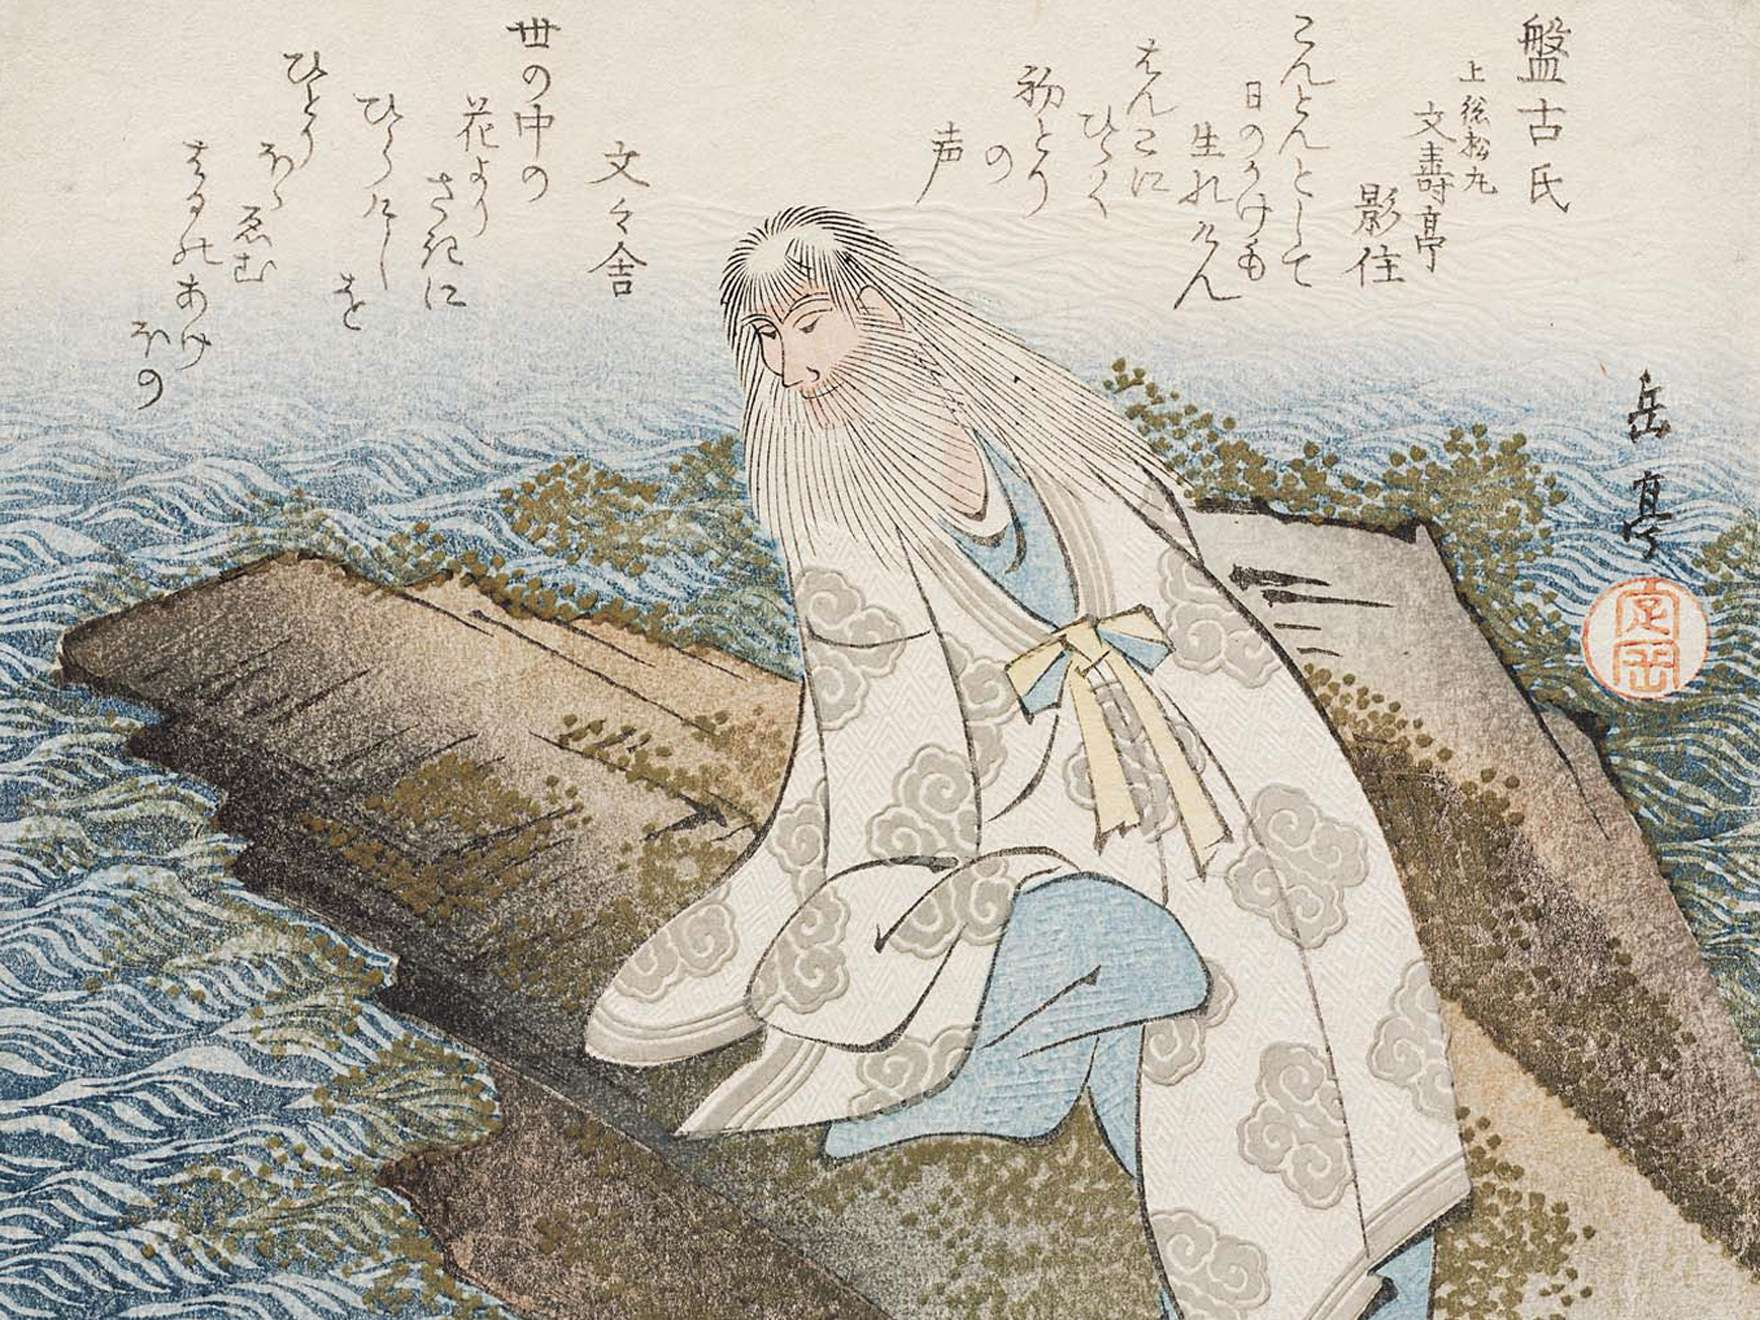 Yashima Gakutei, Pangu (Banko shi), from the series A Set of Ten Famous Numerals for the Katsushika Circle (Katsushikaren meisu juban), about 1821